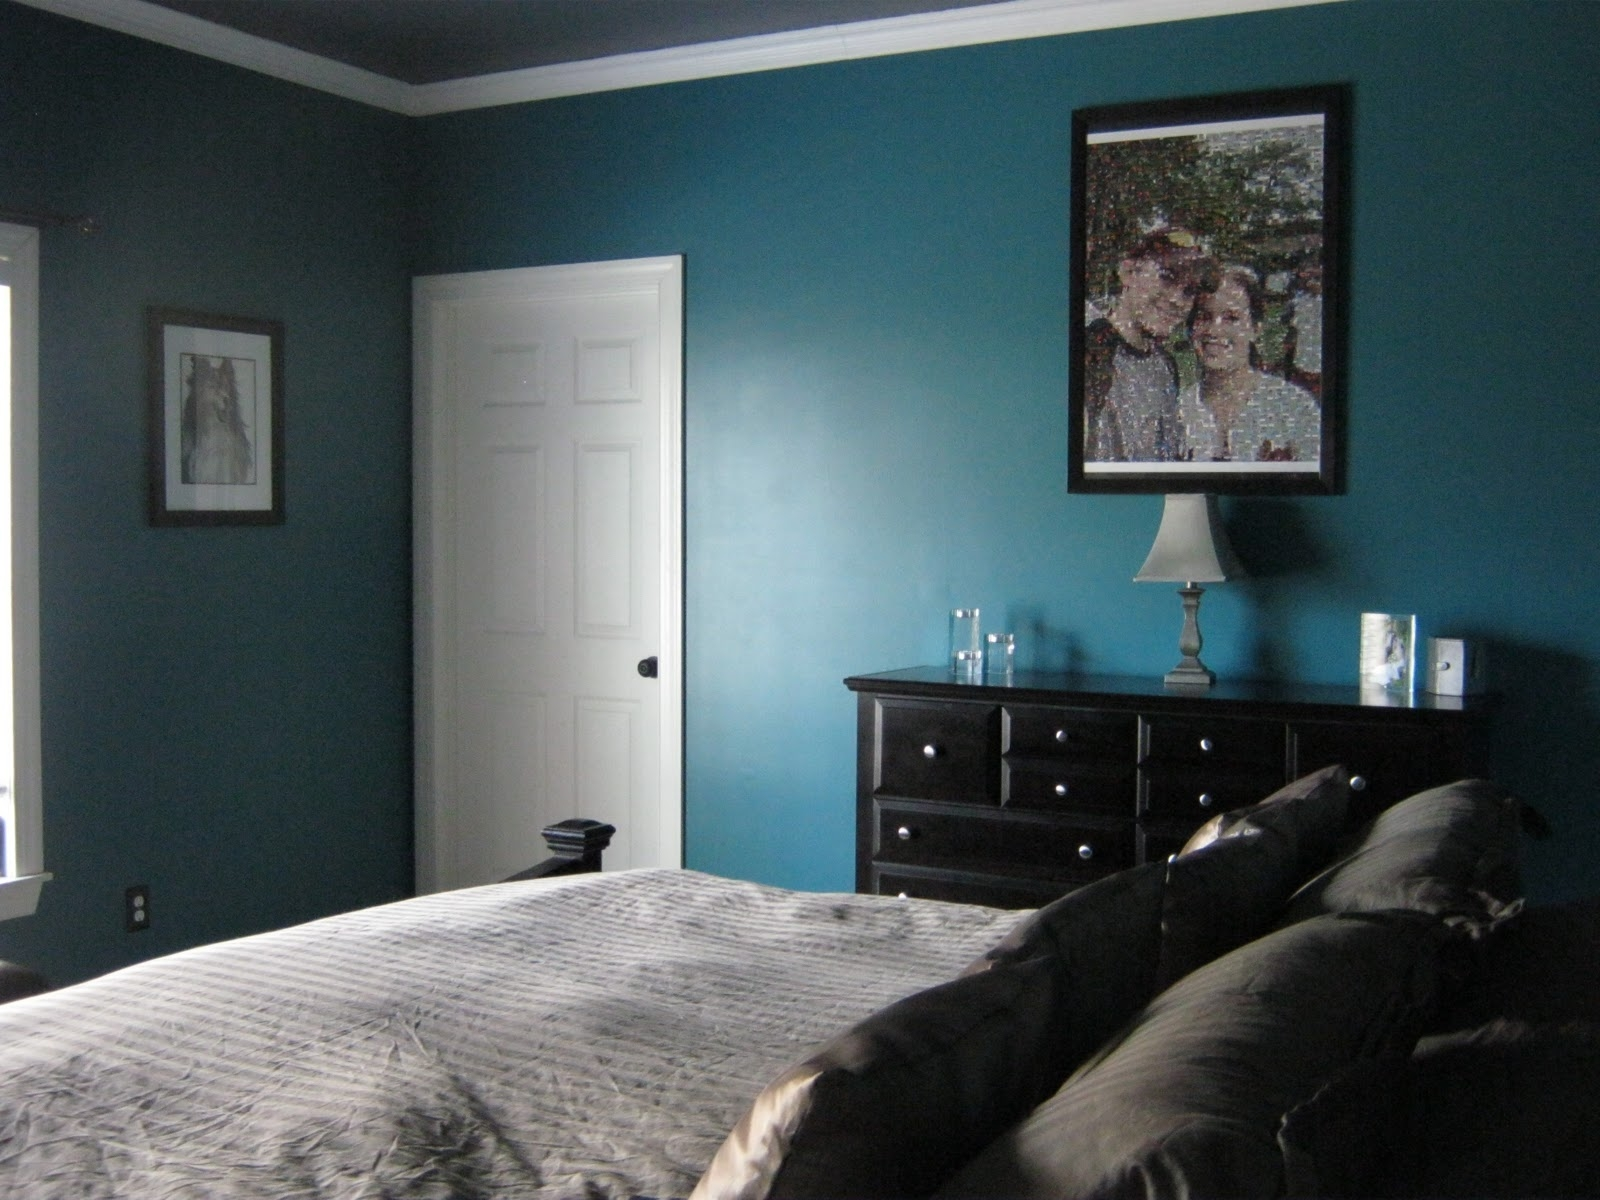 Elegant Teal Bedroom Walls Of Dark Ideas Of With Perfect And Grey Acnn Decor